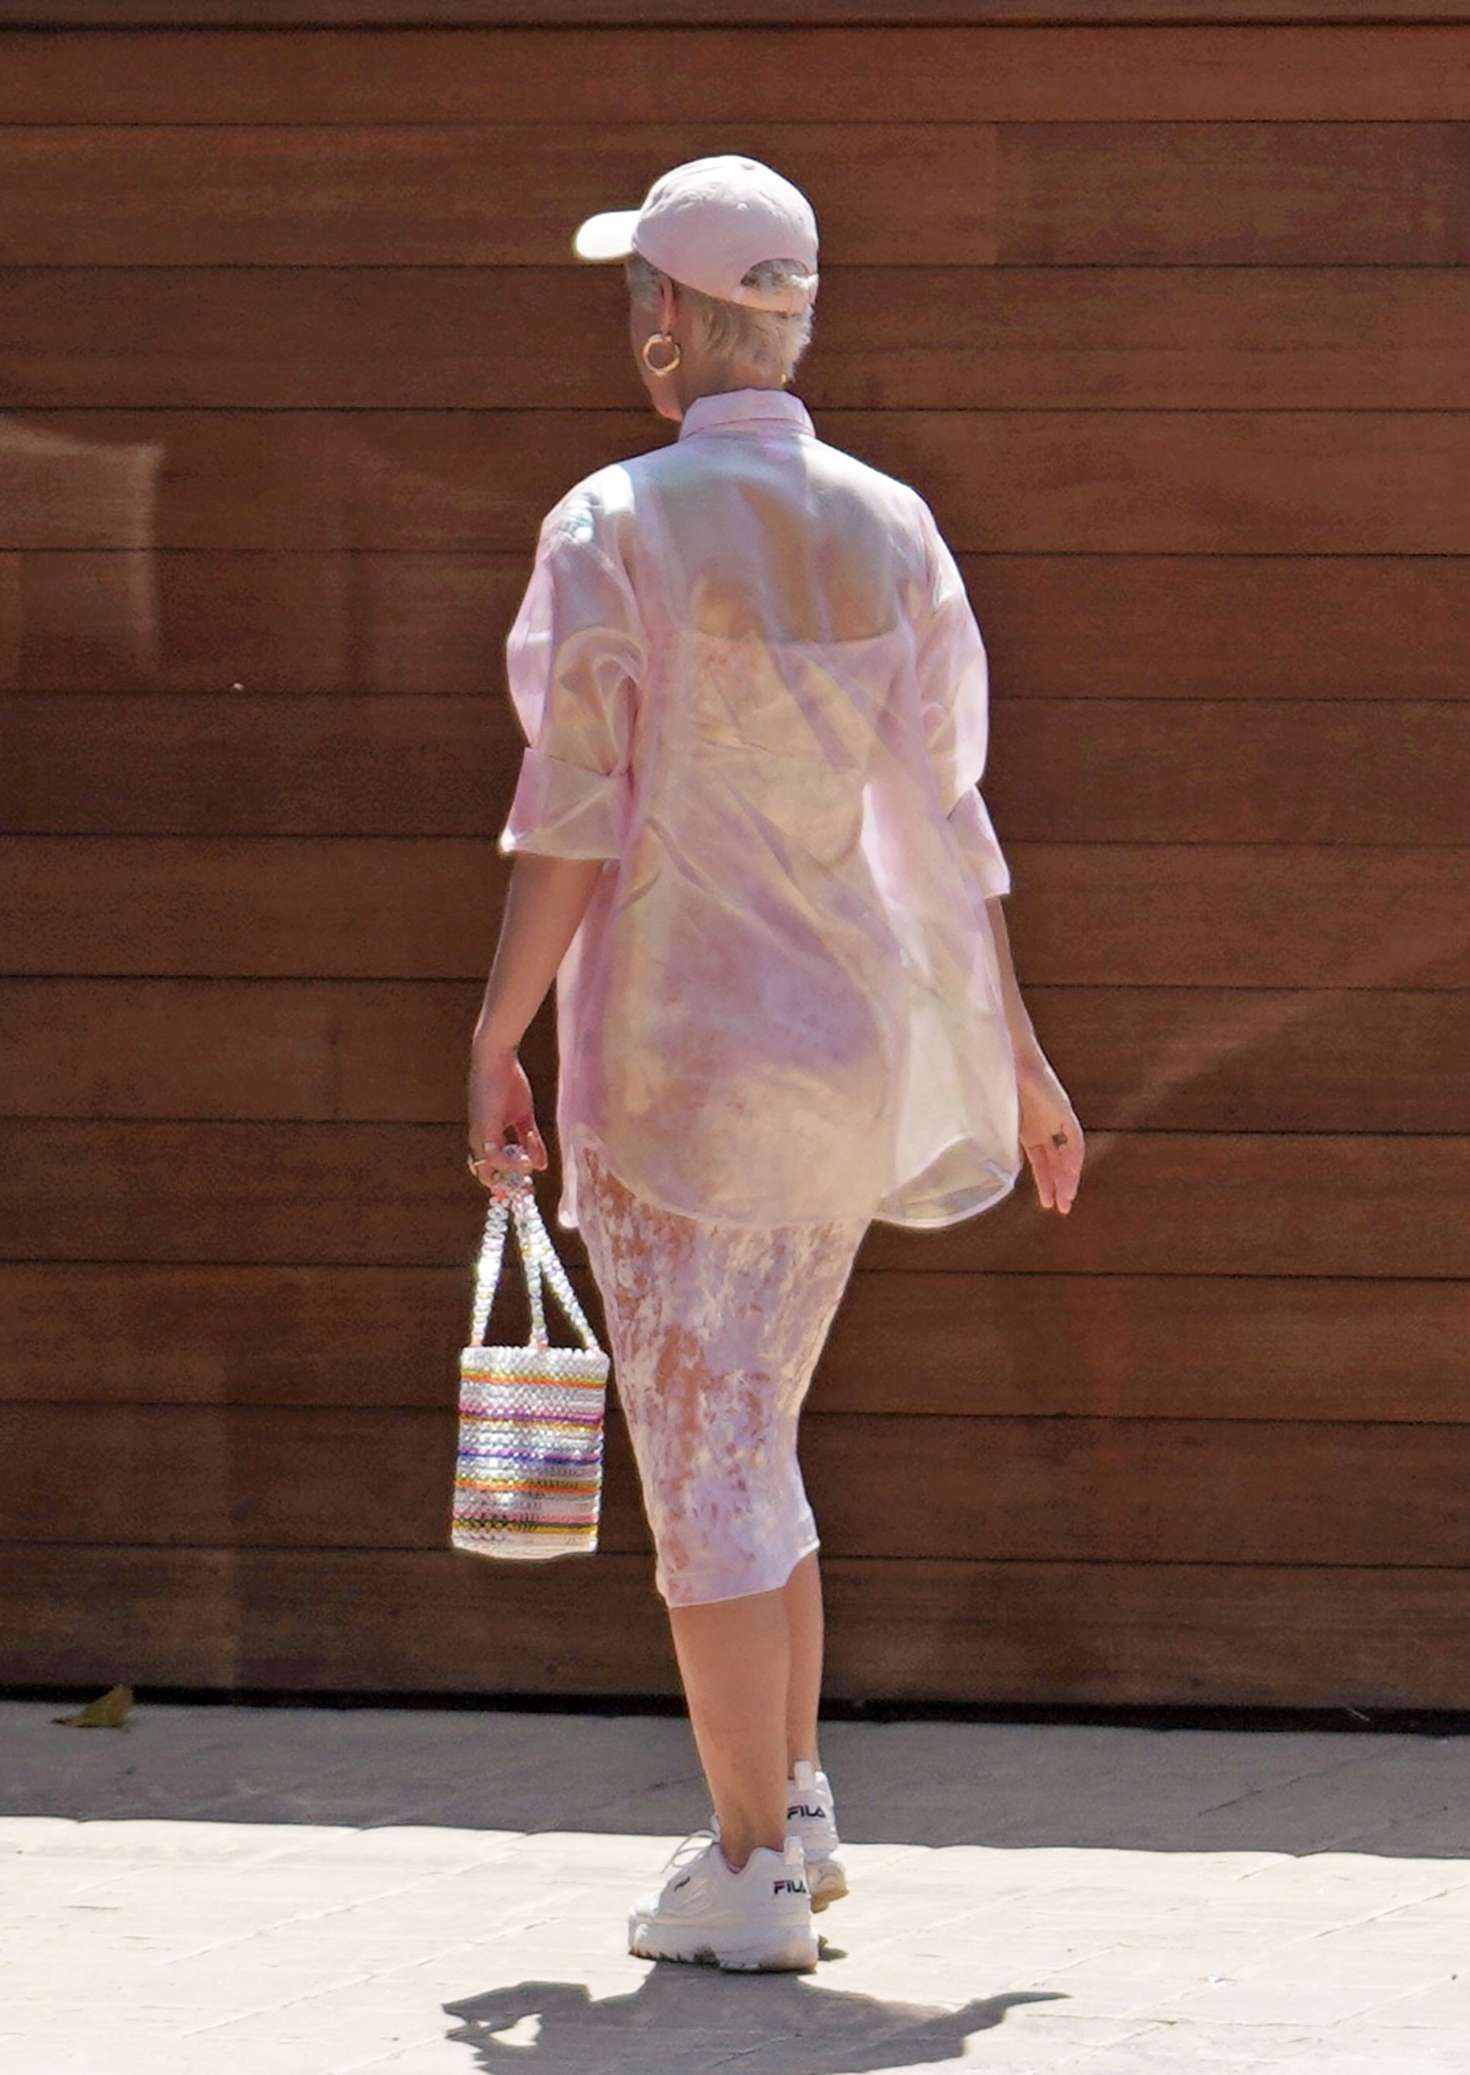 Katy Perry 2019 : Katy Perry: Attending church service -02